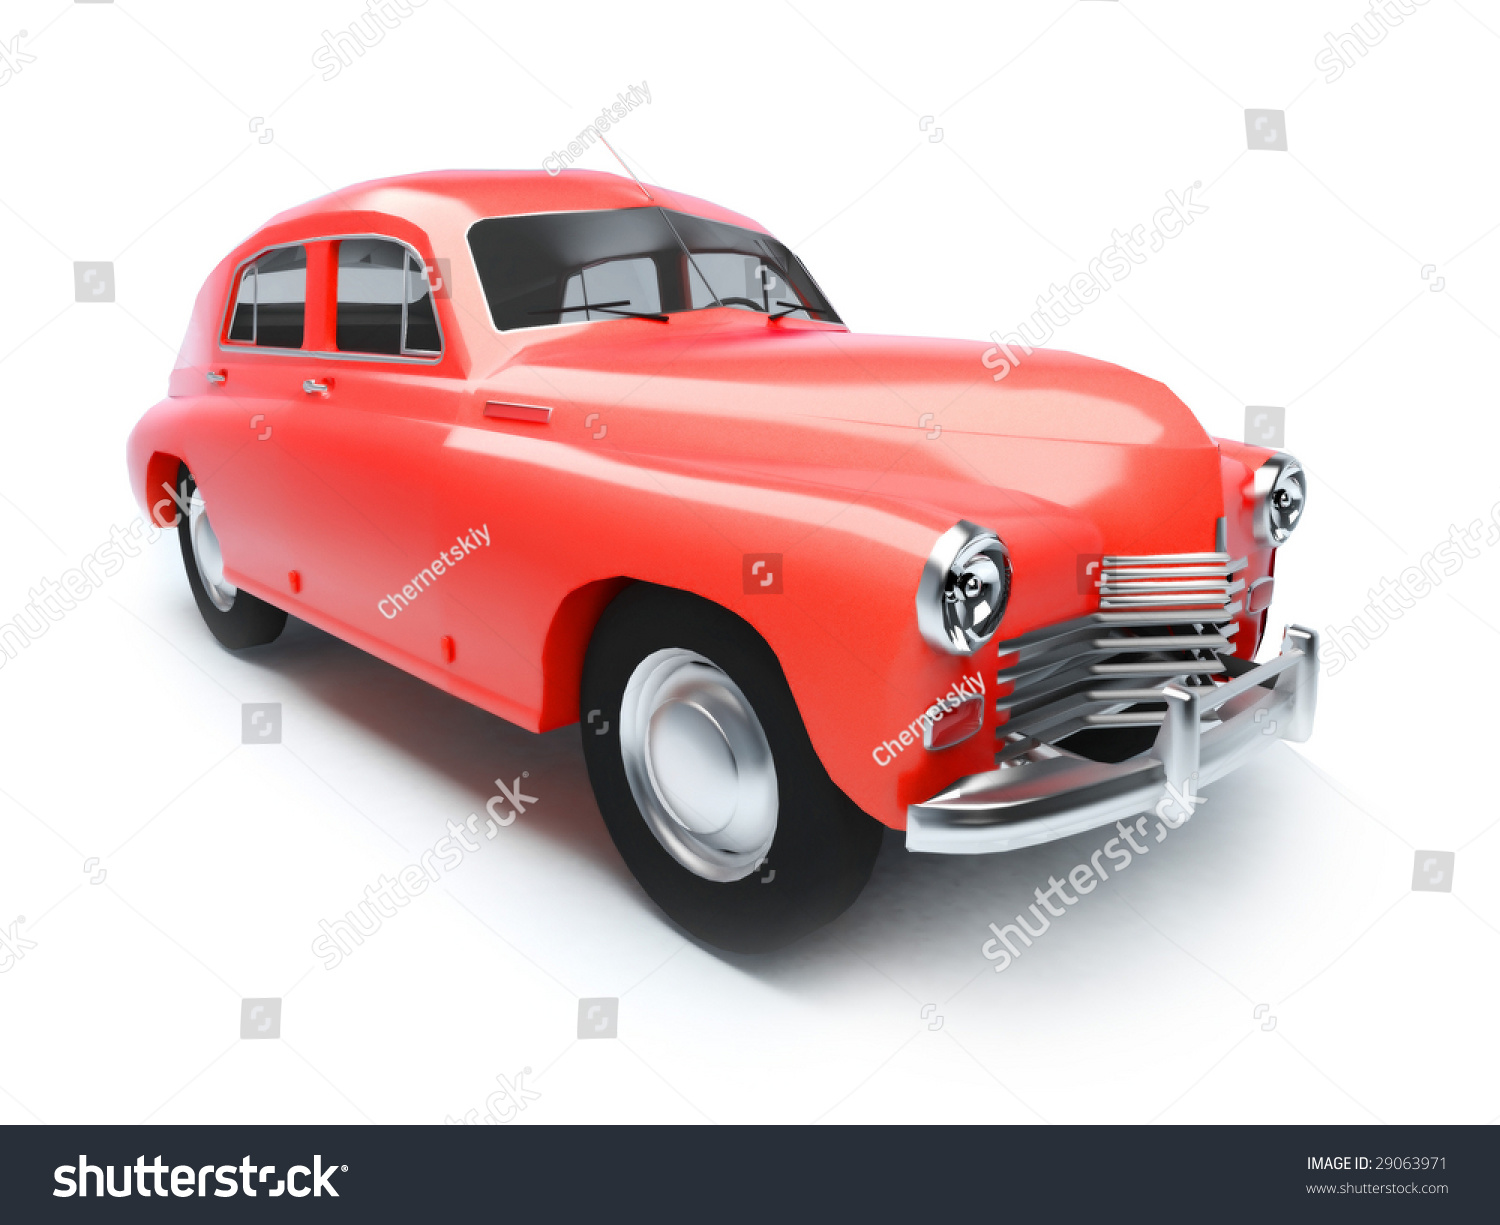 Nice How Do I Find My Old Car Contemporary - Classic Cars Ideas ...